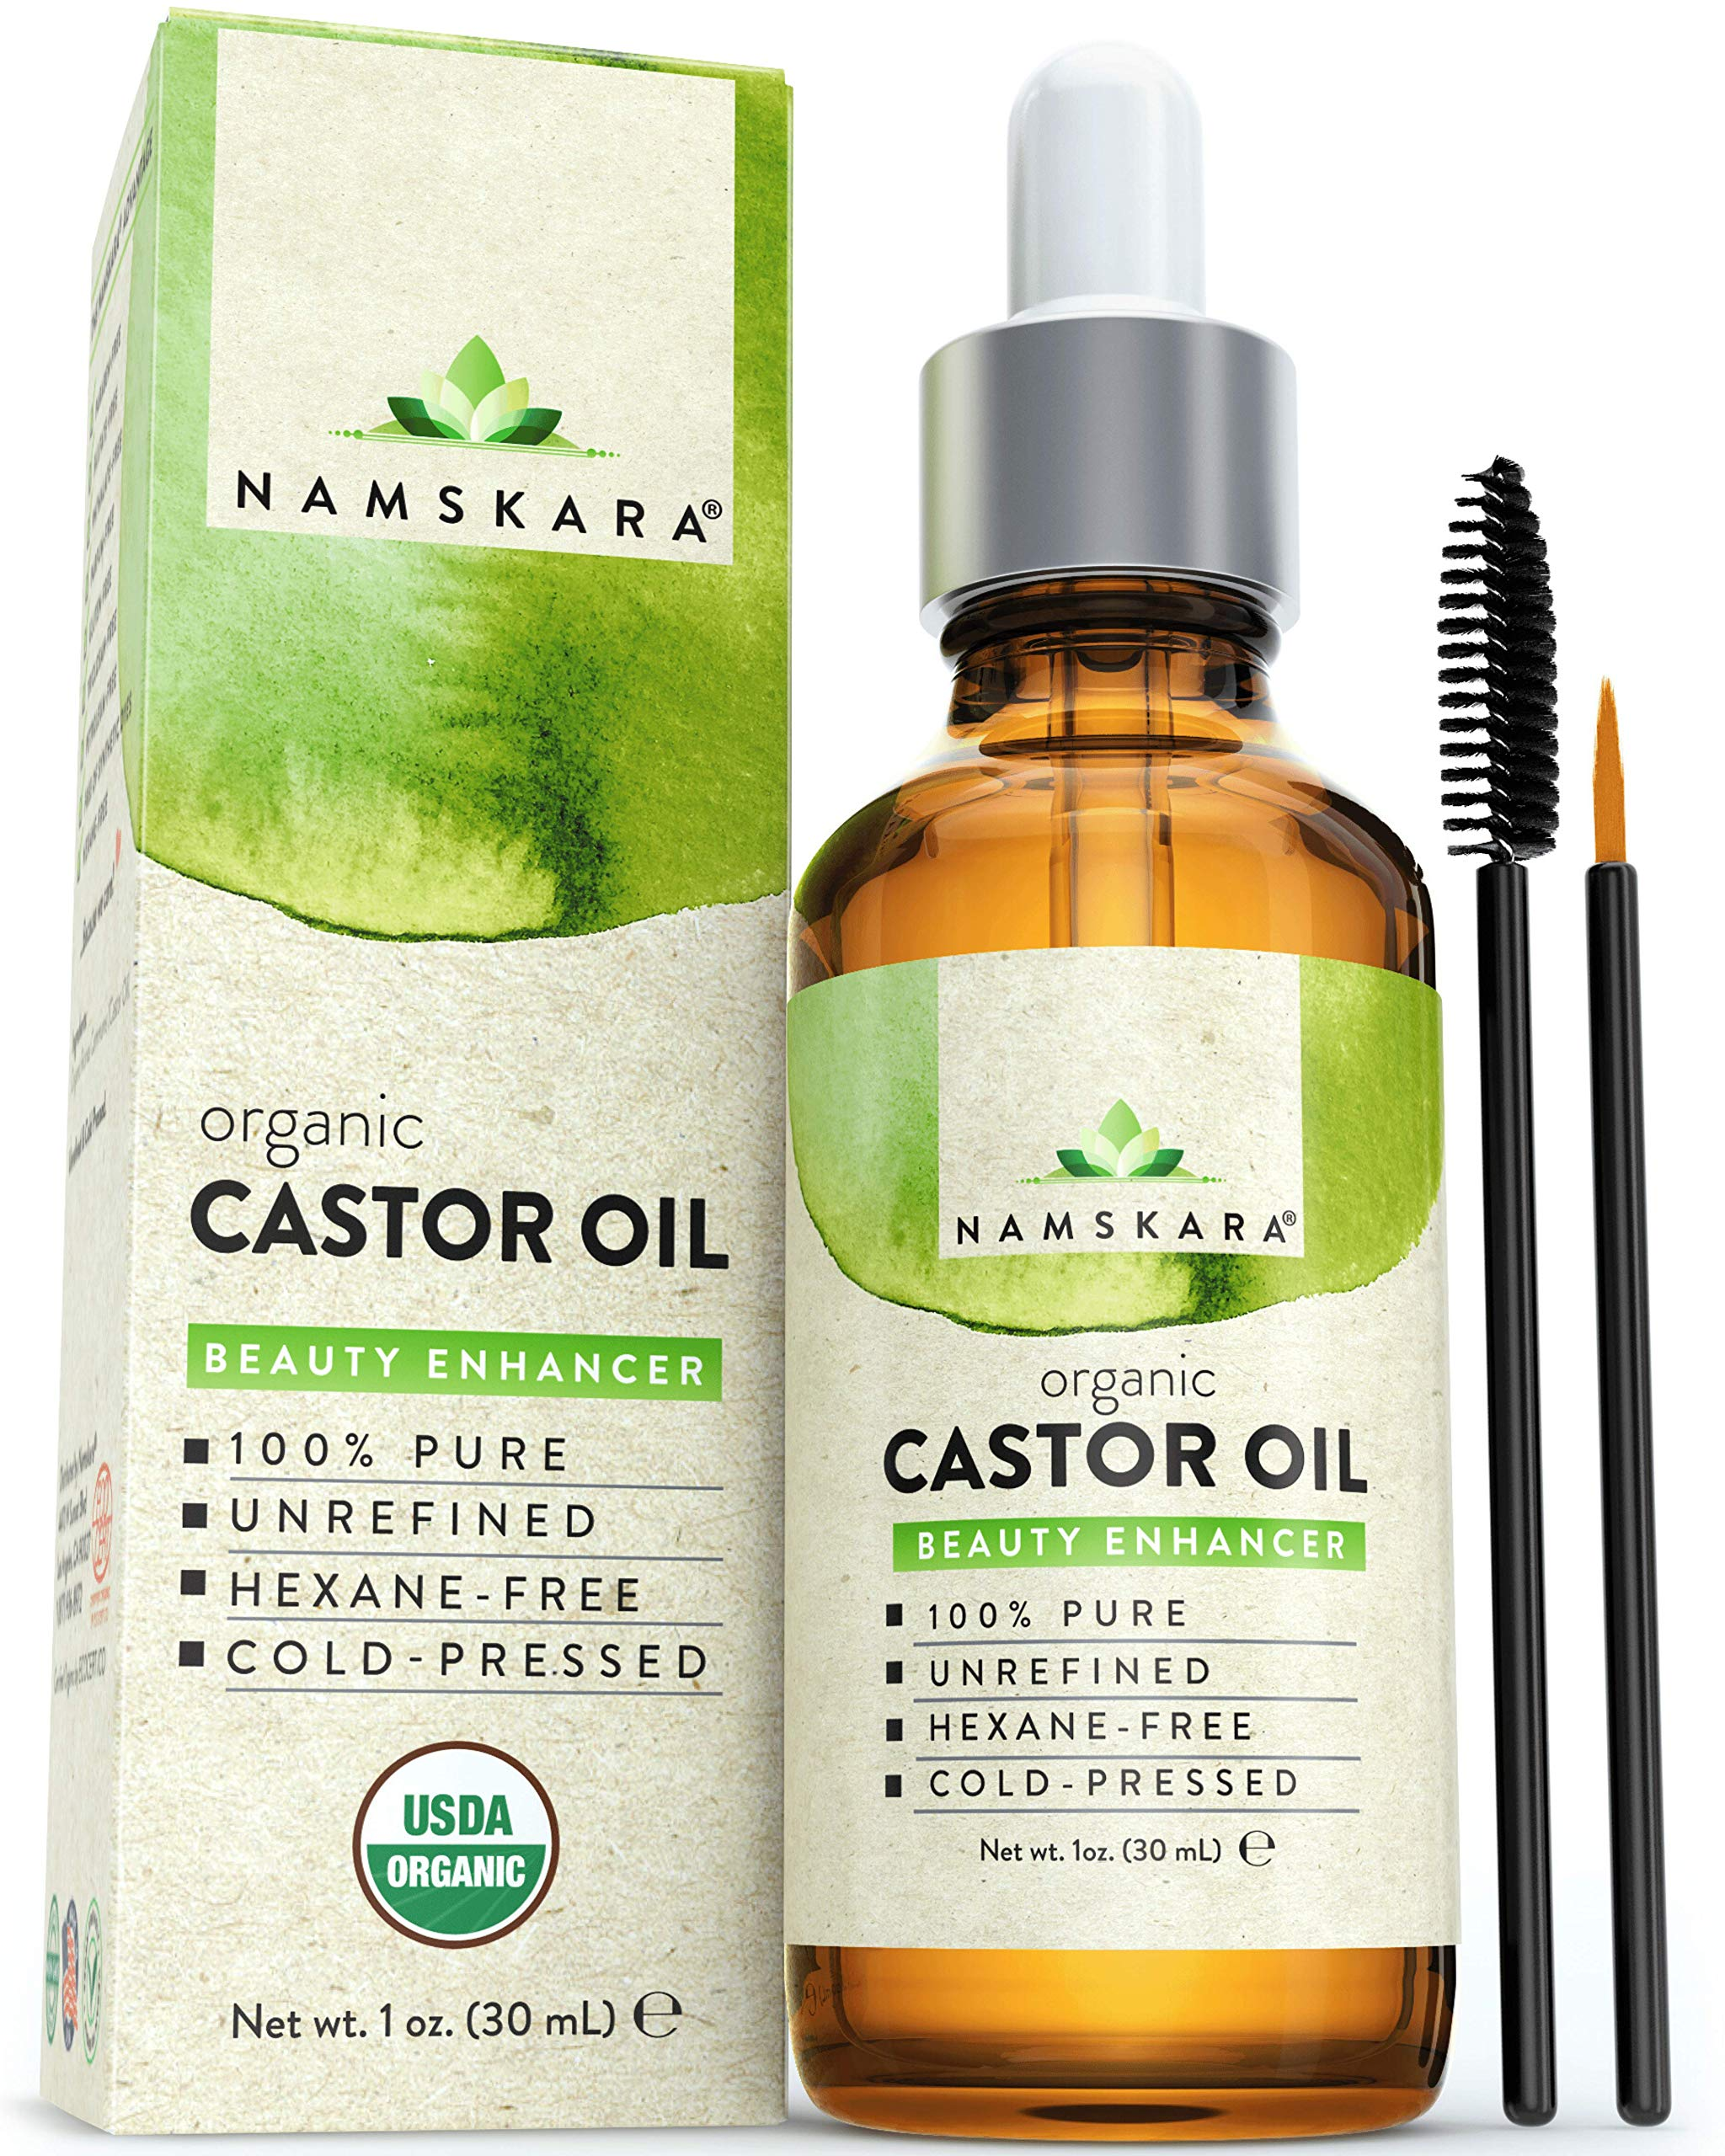 Organic Castor Oil - USDA Certified Organic 100% Pure, Cold-Pressed, Extra-Virgin, Hexane-Free. Best Carrier Oil For Eyelashes, Hair, Eyebrows & Skin (1oz)